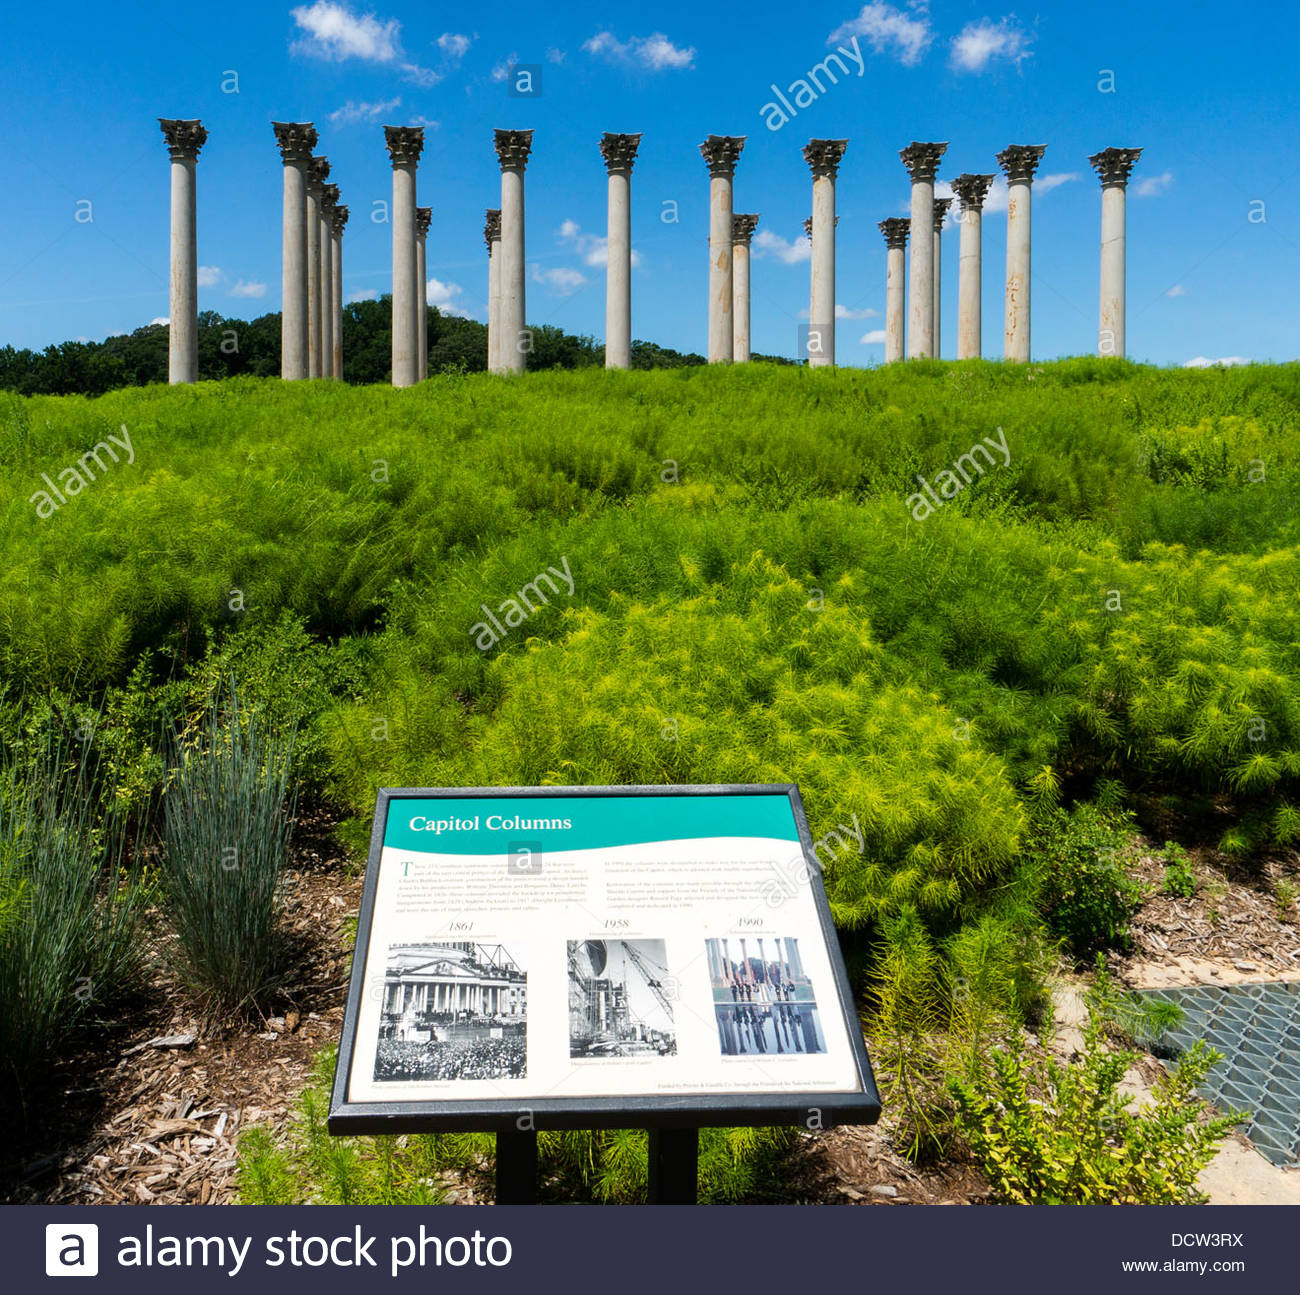 The Capitol Columns At The National Arboretum In Washington Dc